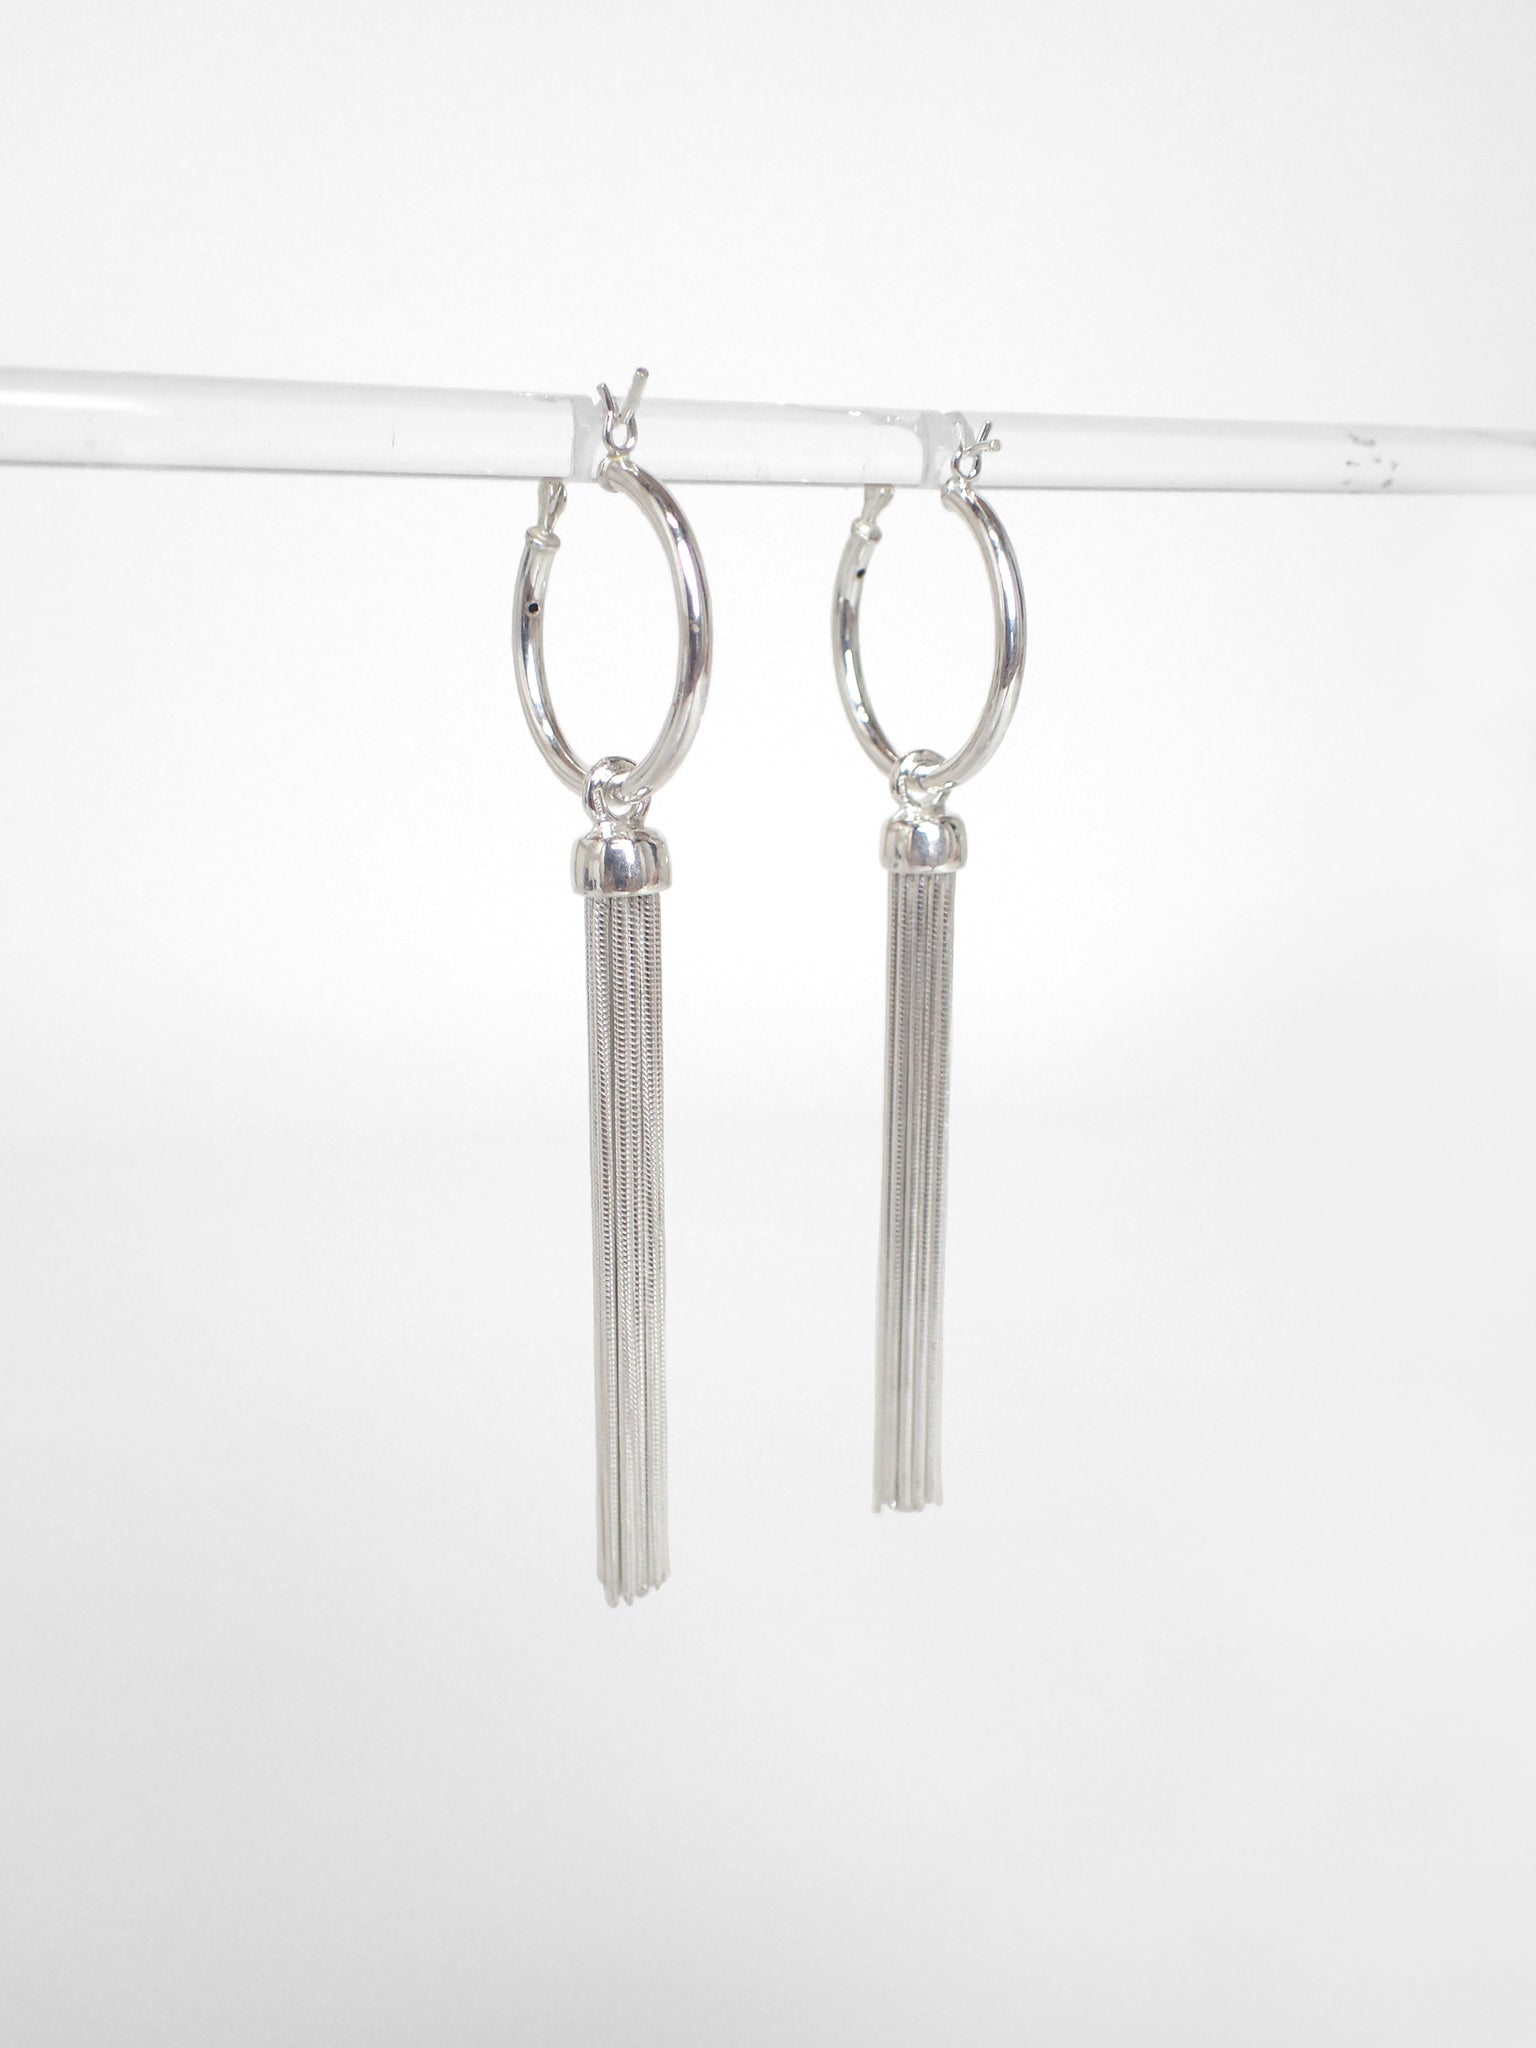 Tassau Hoop Earrings / Silver